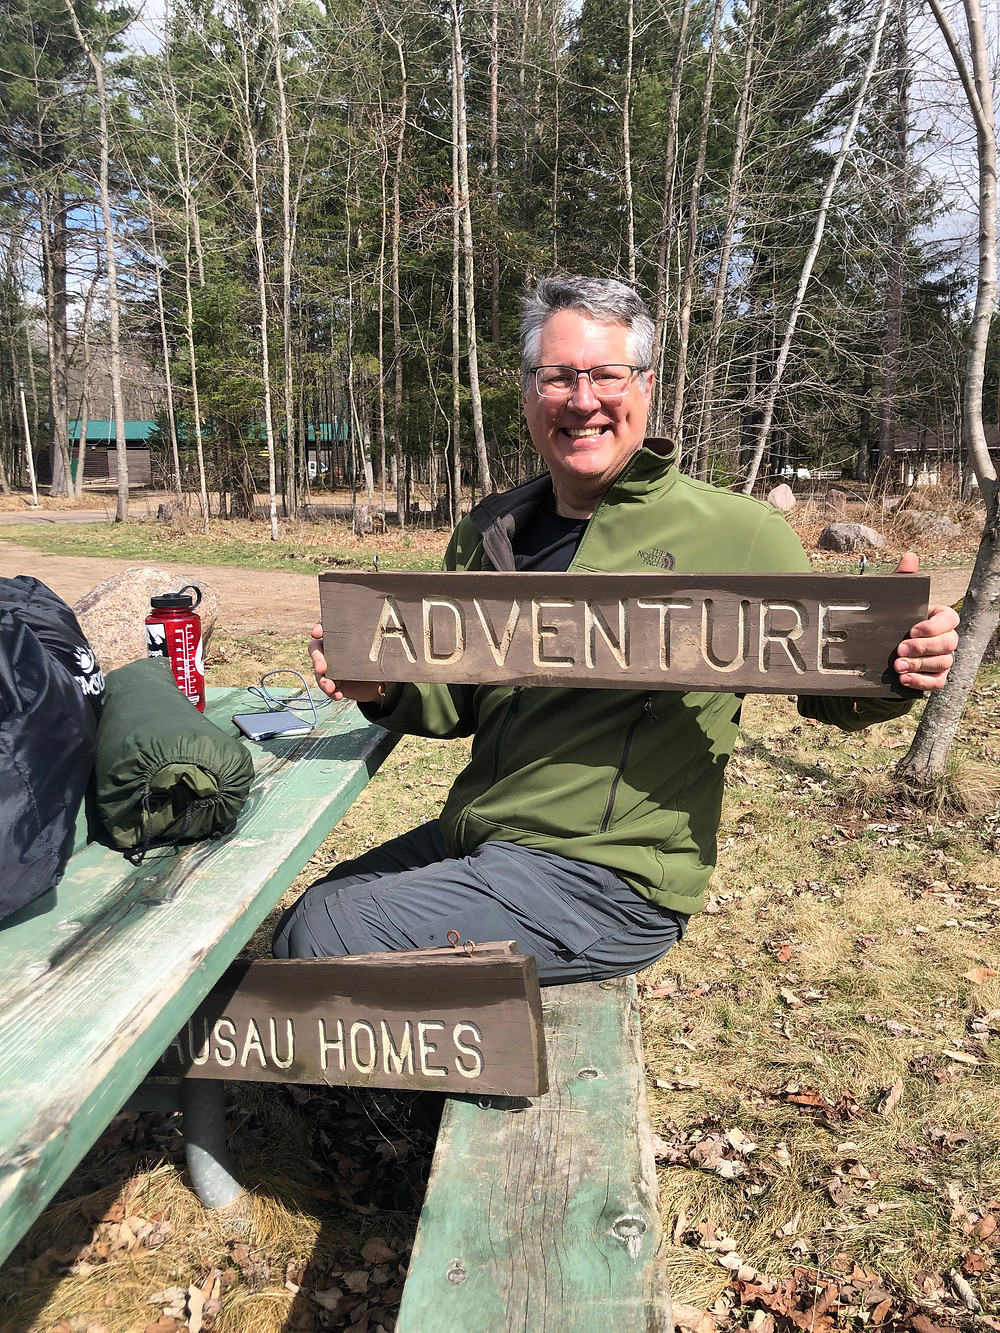 Jeff is always up for an adventure, especially when it involves hiking or fishing